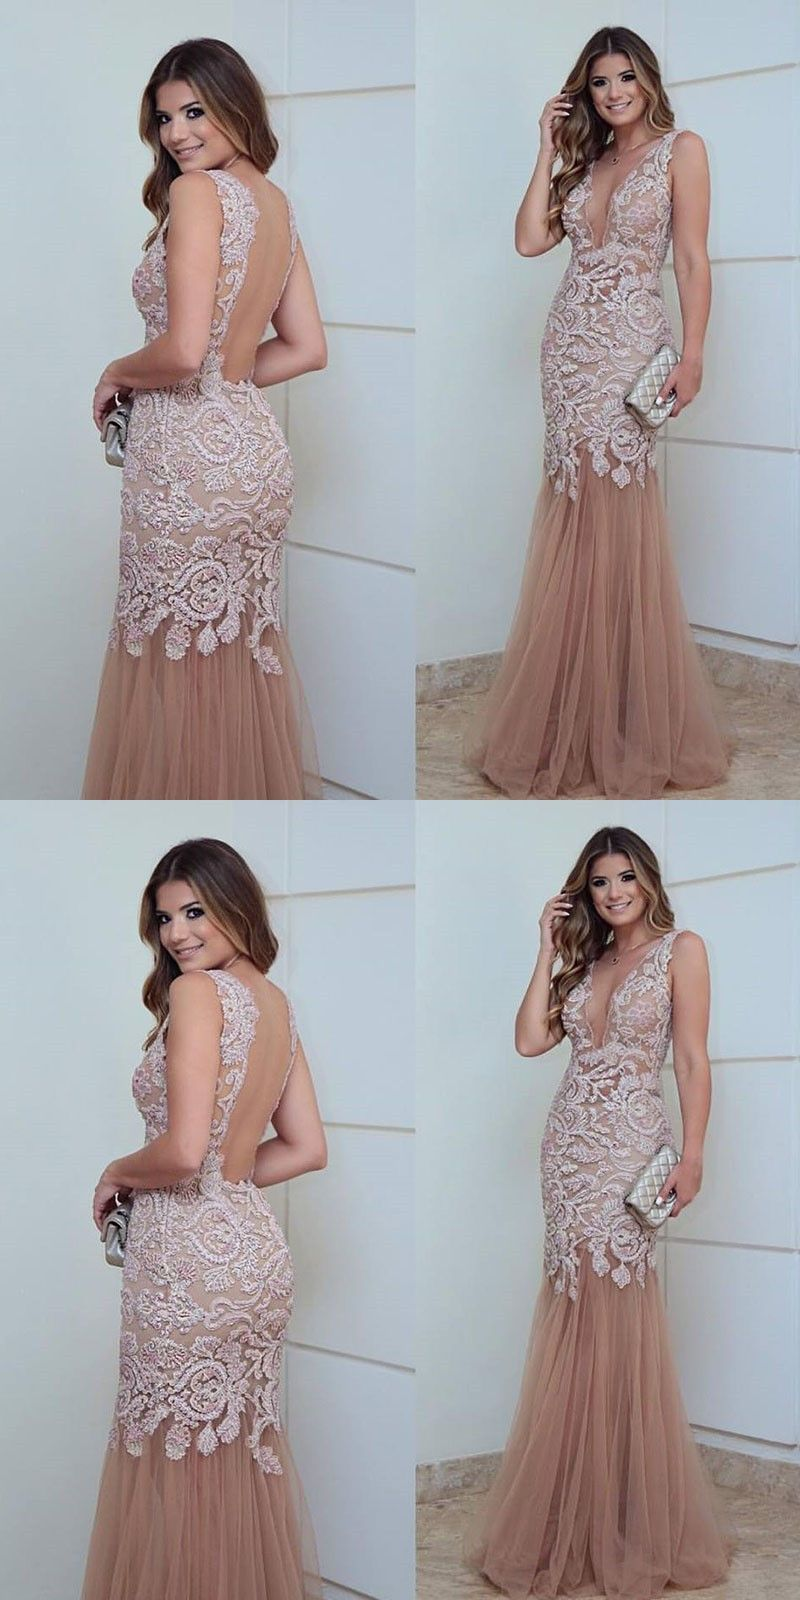 Mermaid deep vneck light champagne tulle prom dress with appliques